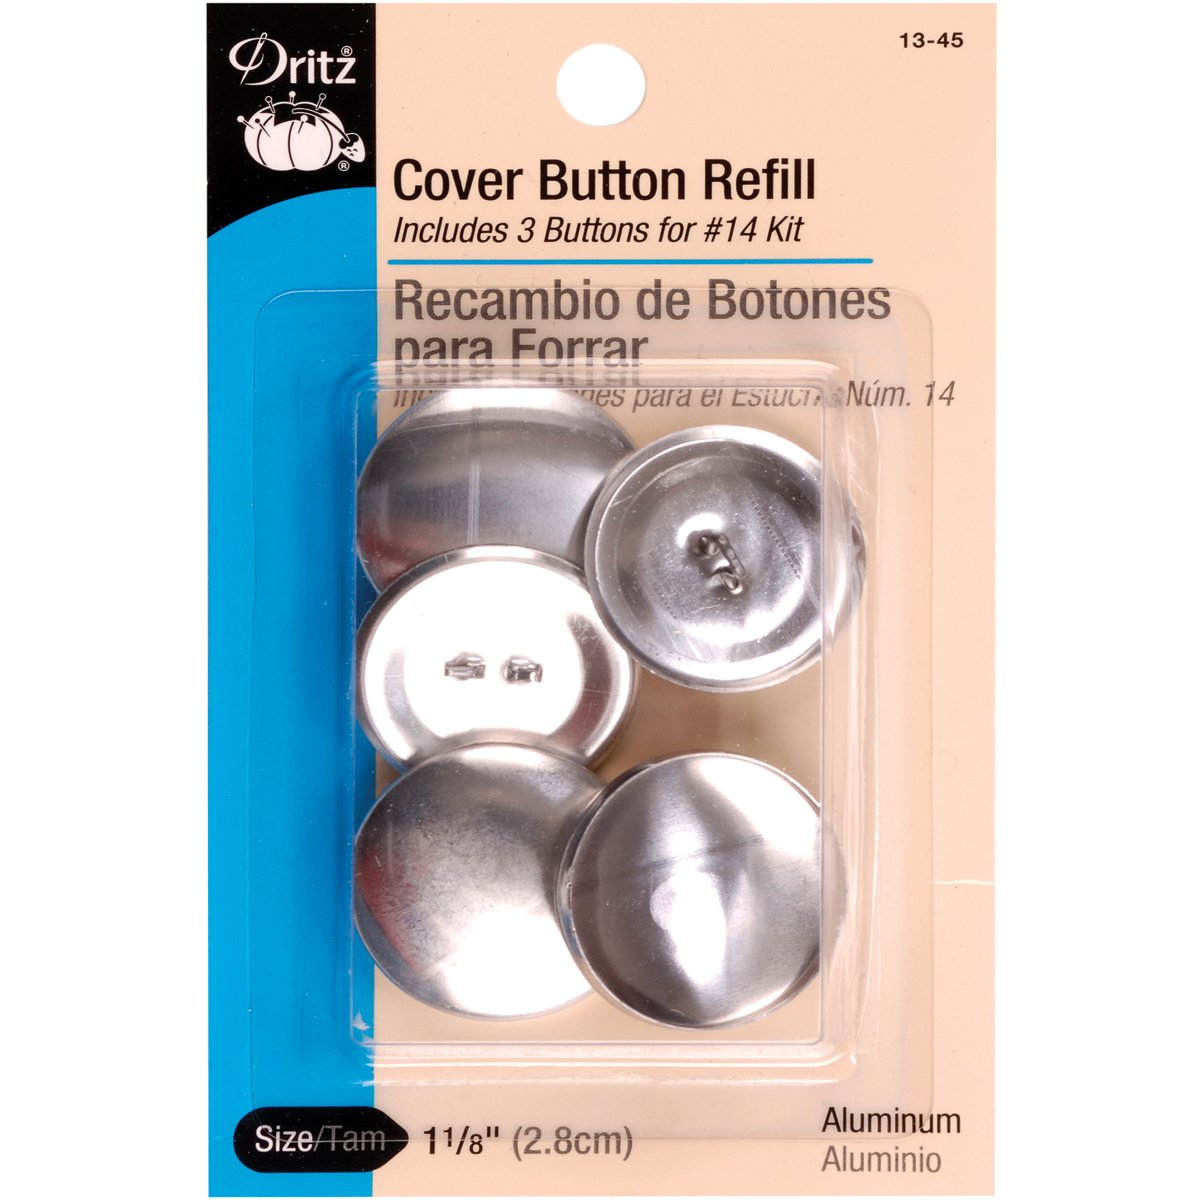 Dritz 13-45 Cover Button Refill - For # 14 Kits, Size 45, 3 Count Size 45